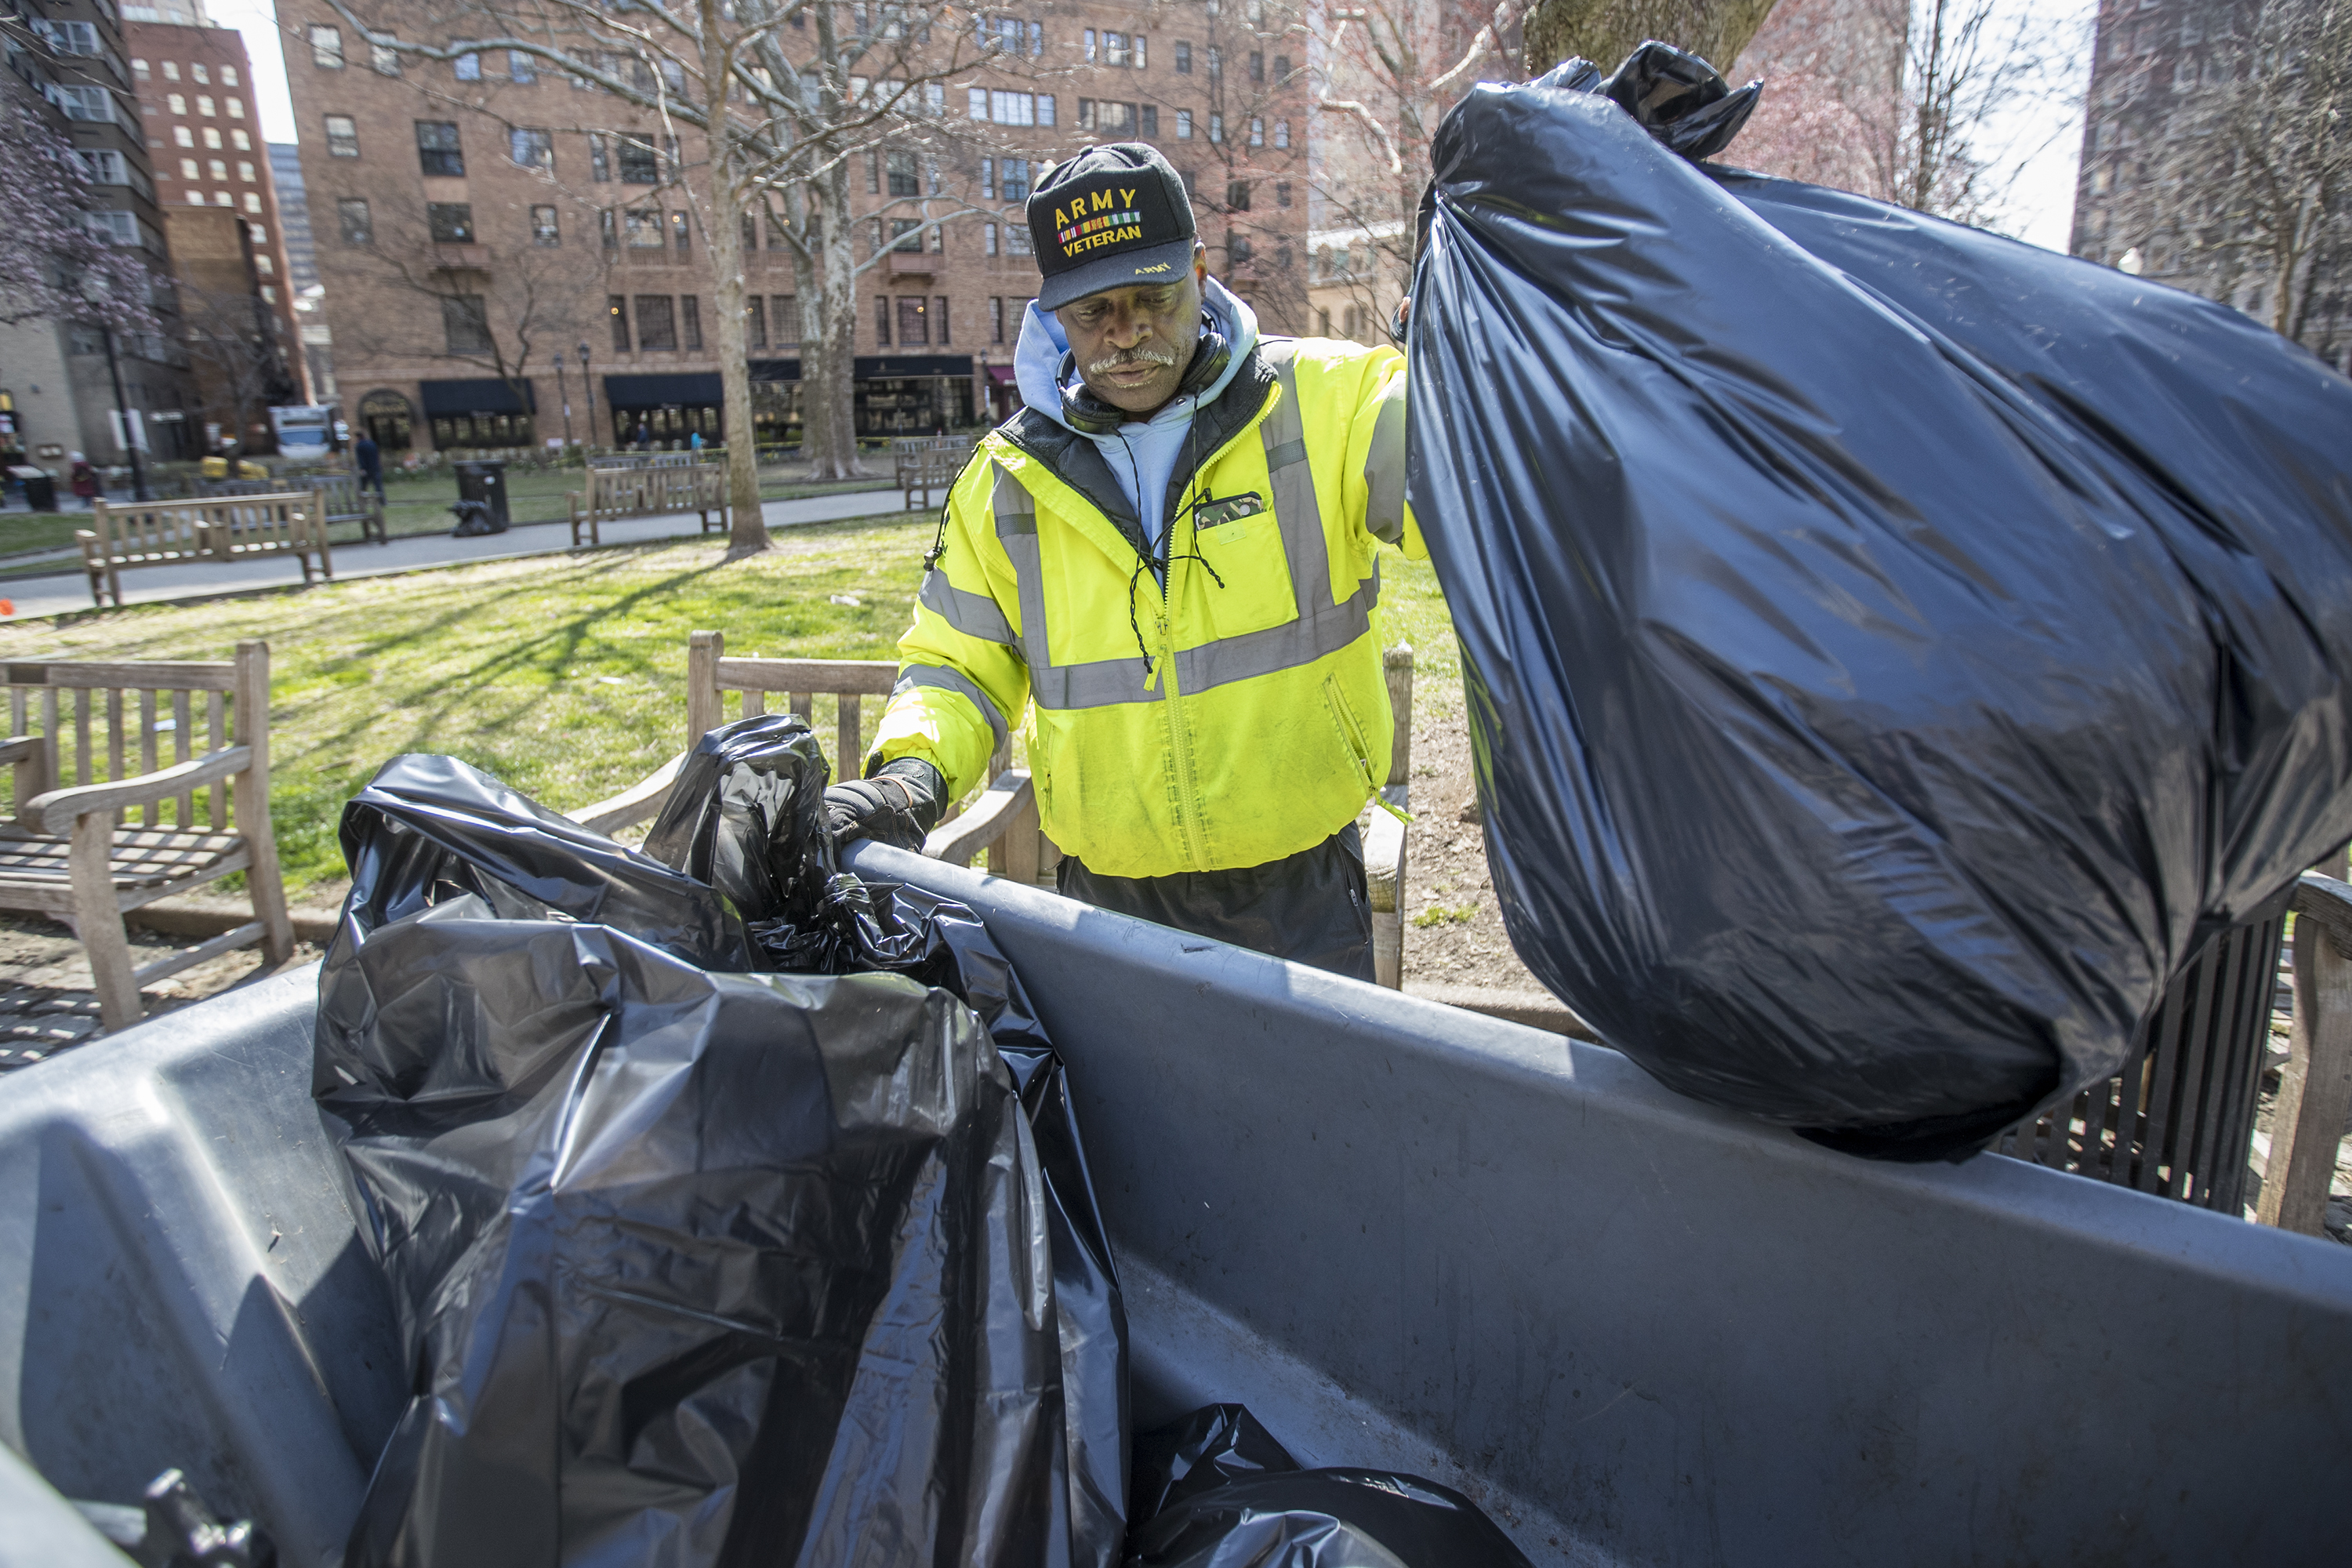 Carlos Rowland loads up a bag of garbage from one of the 89 garbage cans at the park as part of his daily duties.